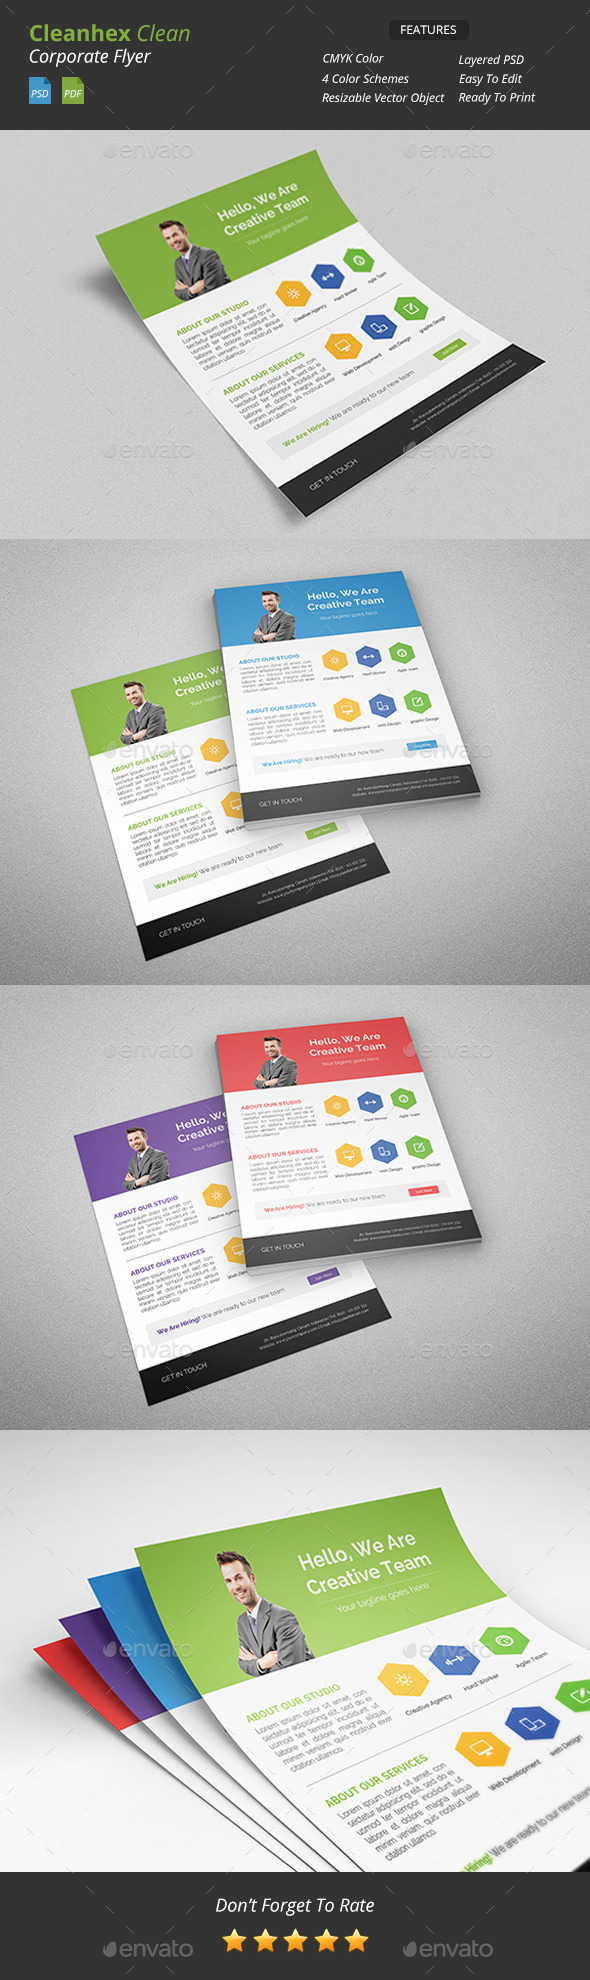 GraphicRiver Cleanhex Clean Corporate Flyer 9503767